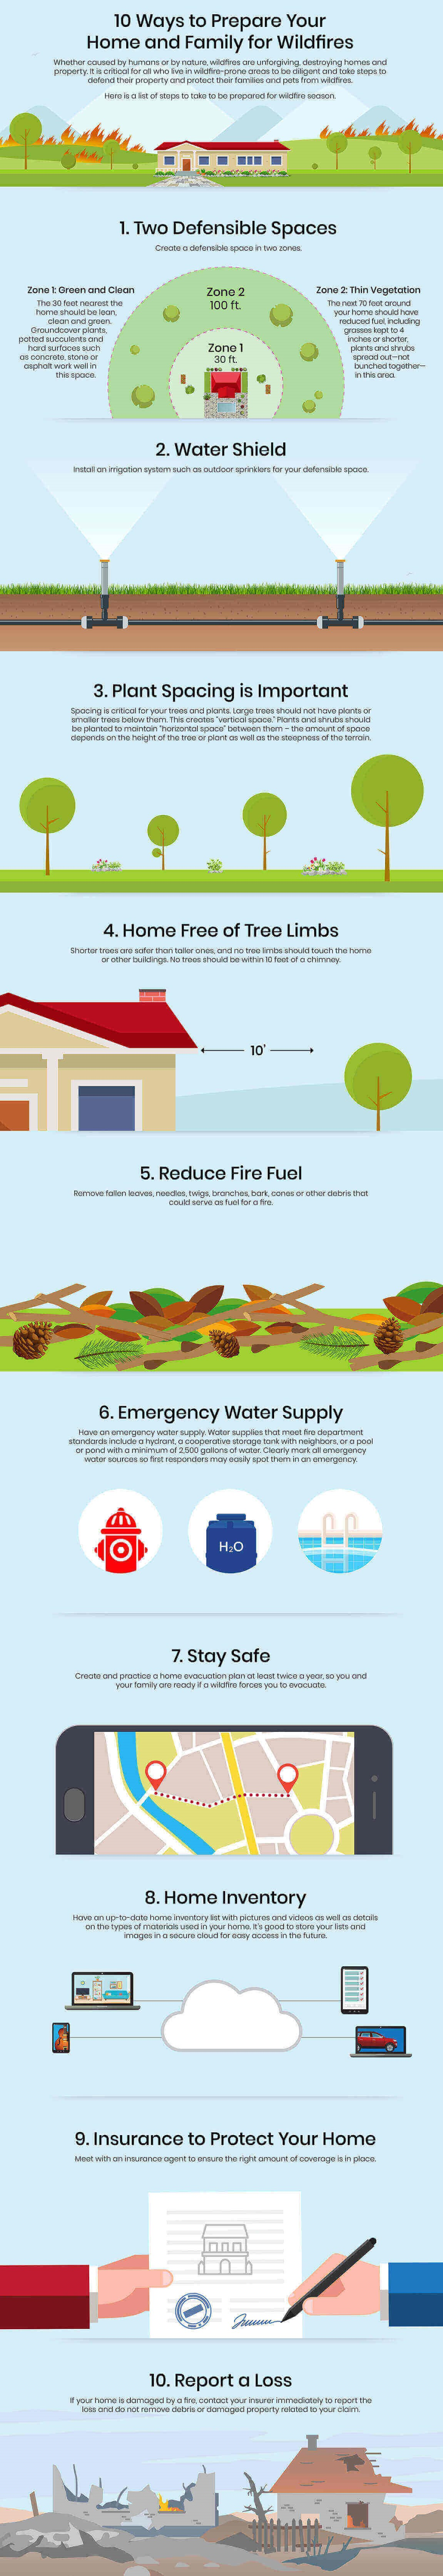 Tips for Wildfire Protection